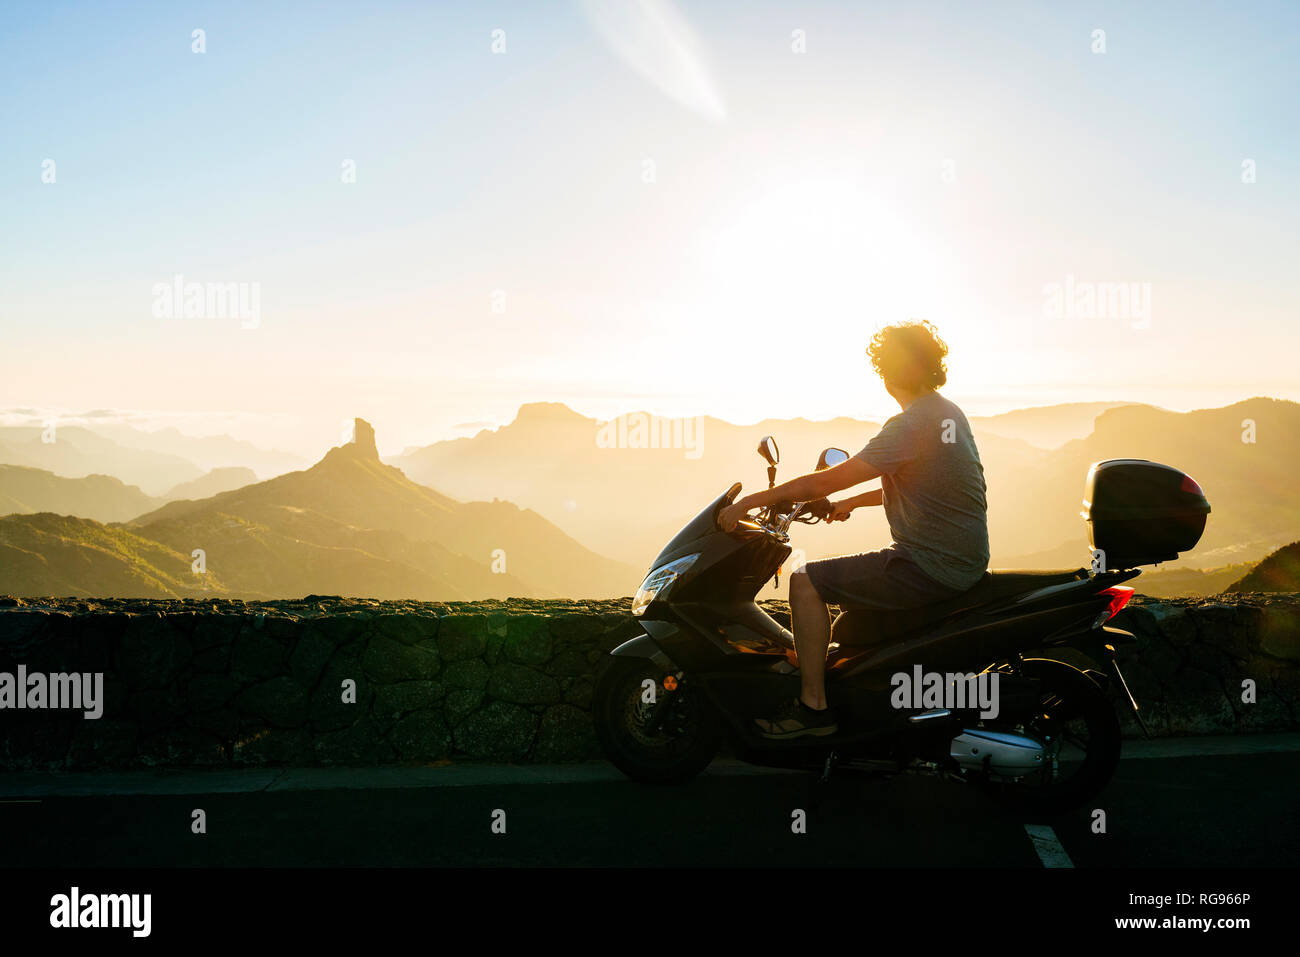 Spain, Canary Islands, Gran Canaria, man on motor scooter watching sunset over mountainscape - Stock Image